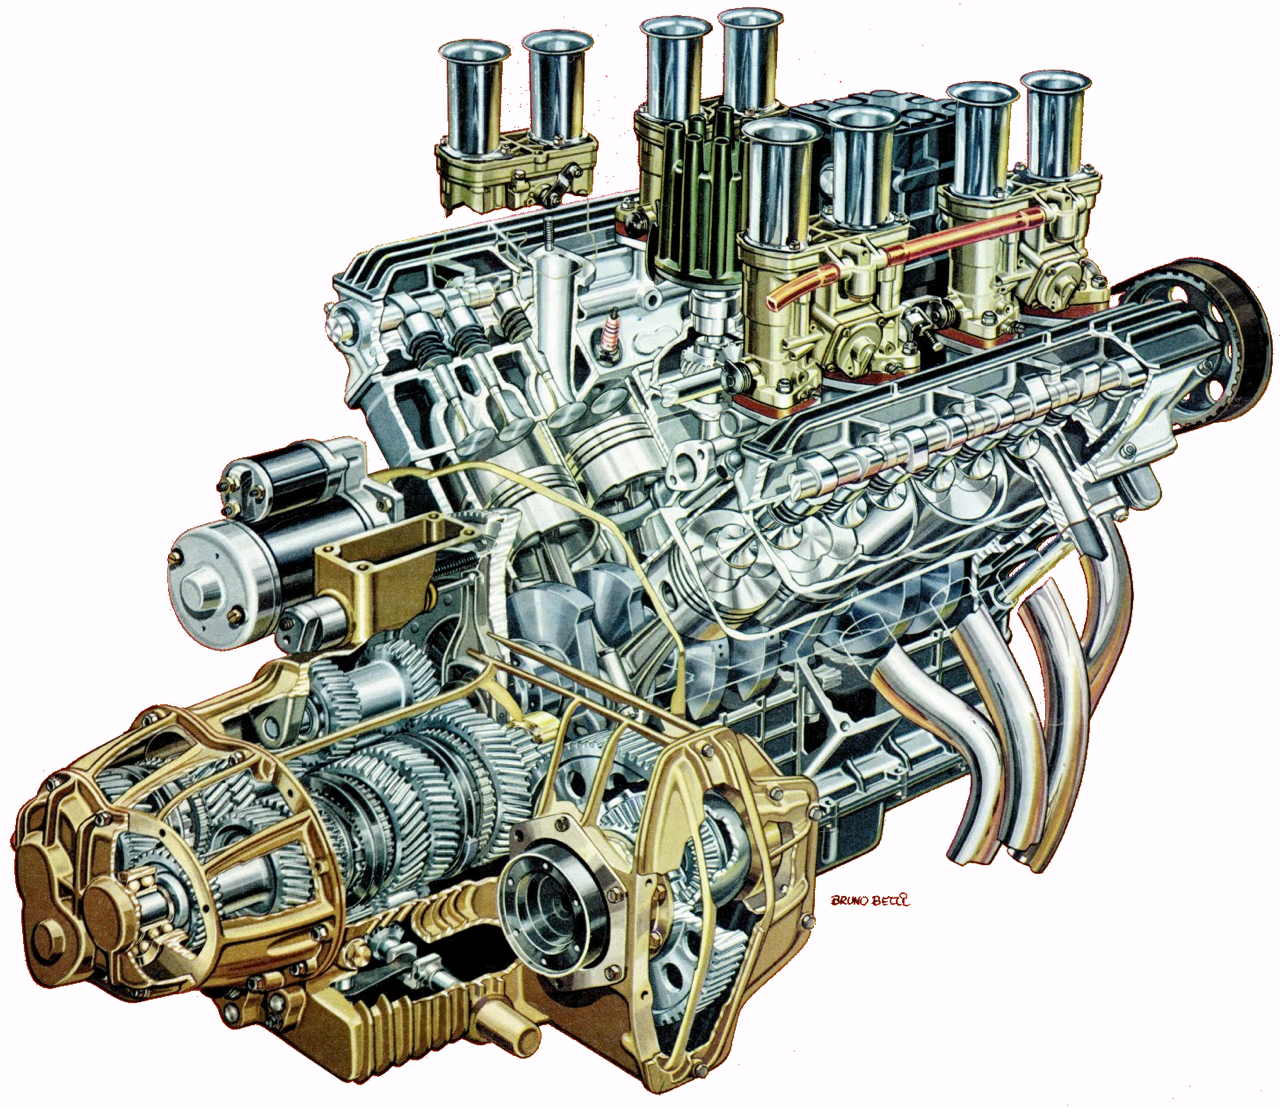 V8 Engine Drawing At Free For Personal Use Rover Diagrams 1280x1107 Cutaway Illustration Race Engines Amp Cutaways